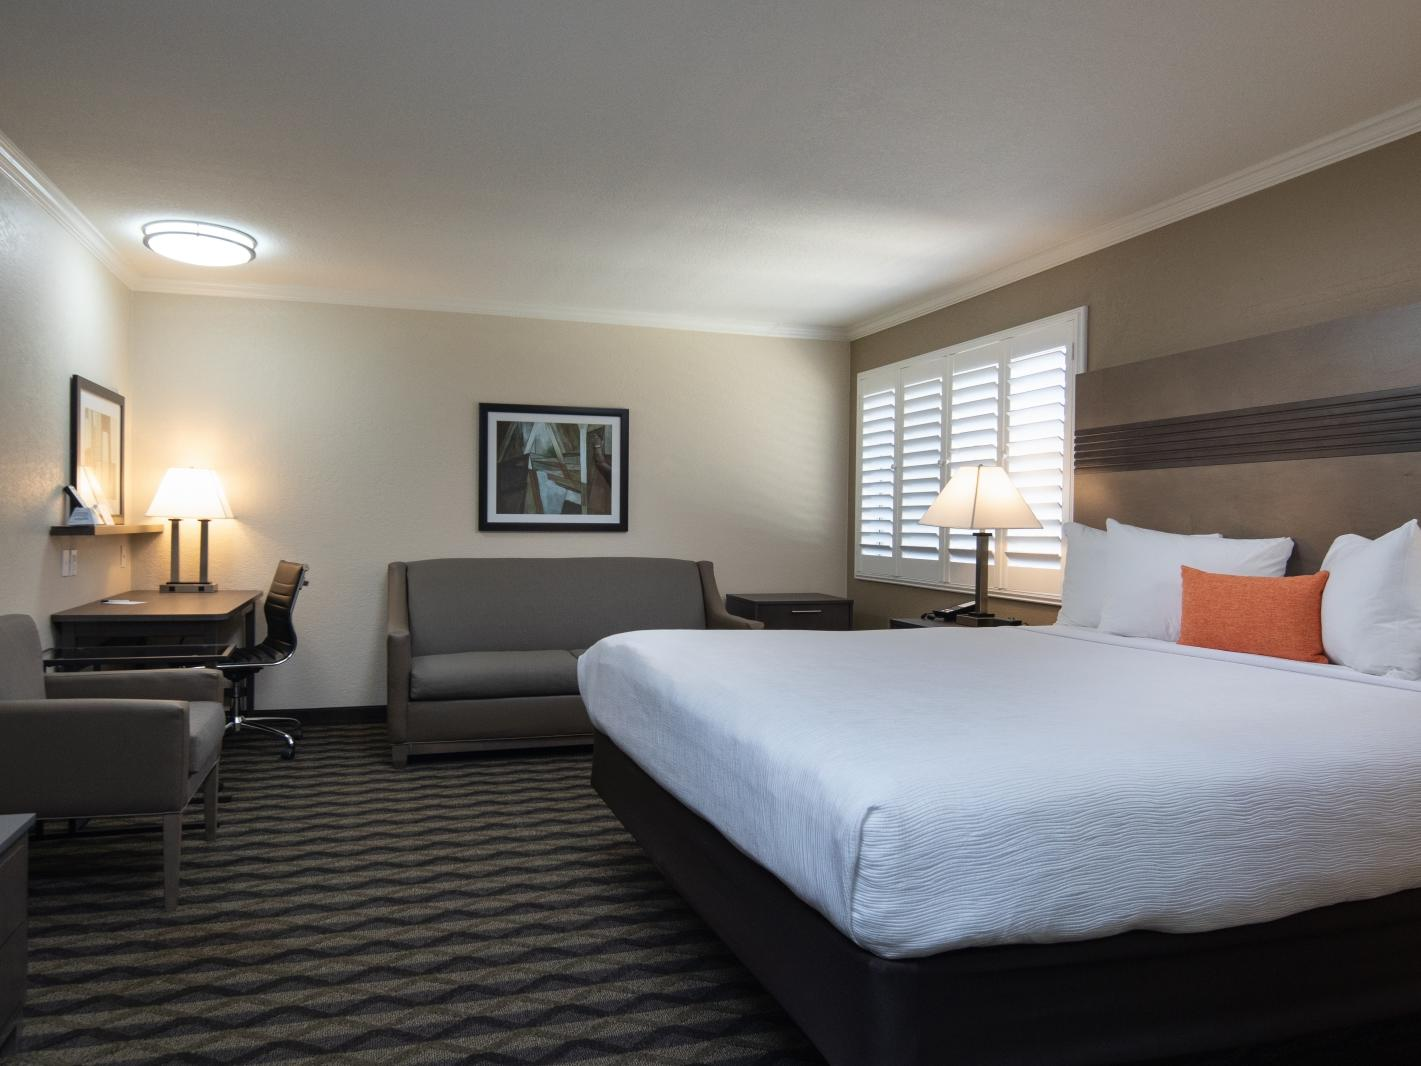 a bed, couch, and desk in a hotel room